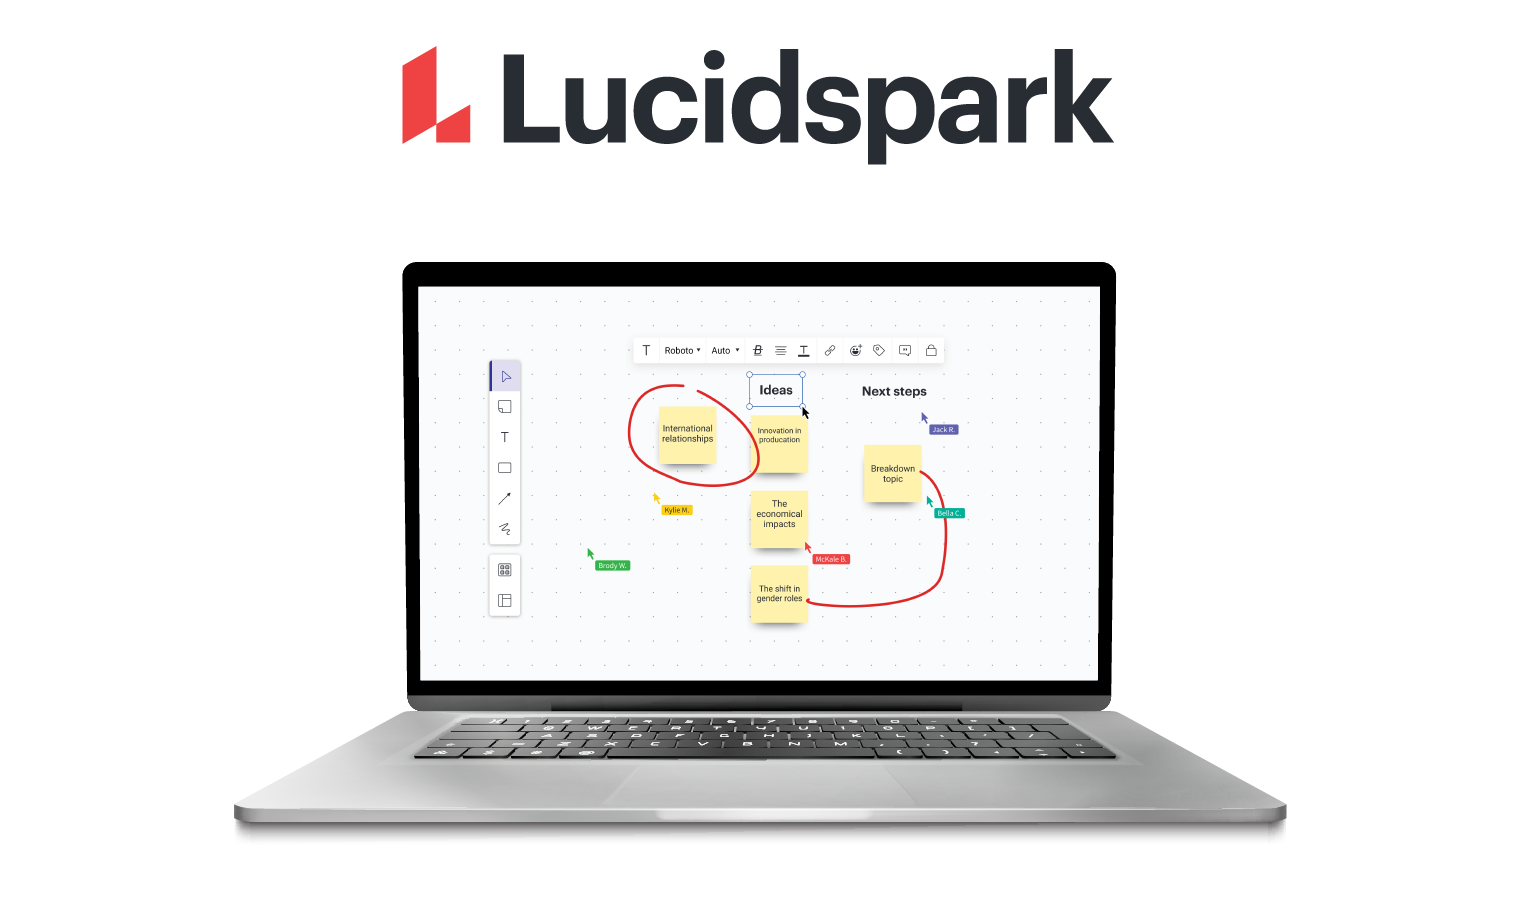 Lucidspark in education